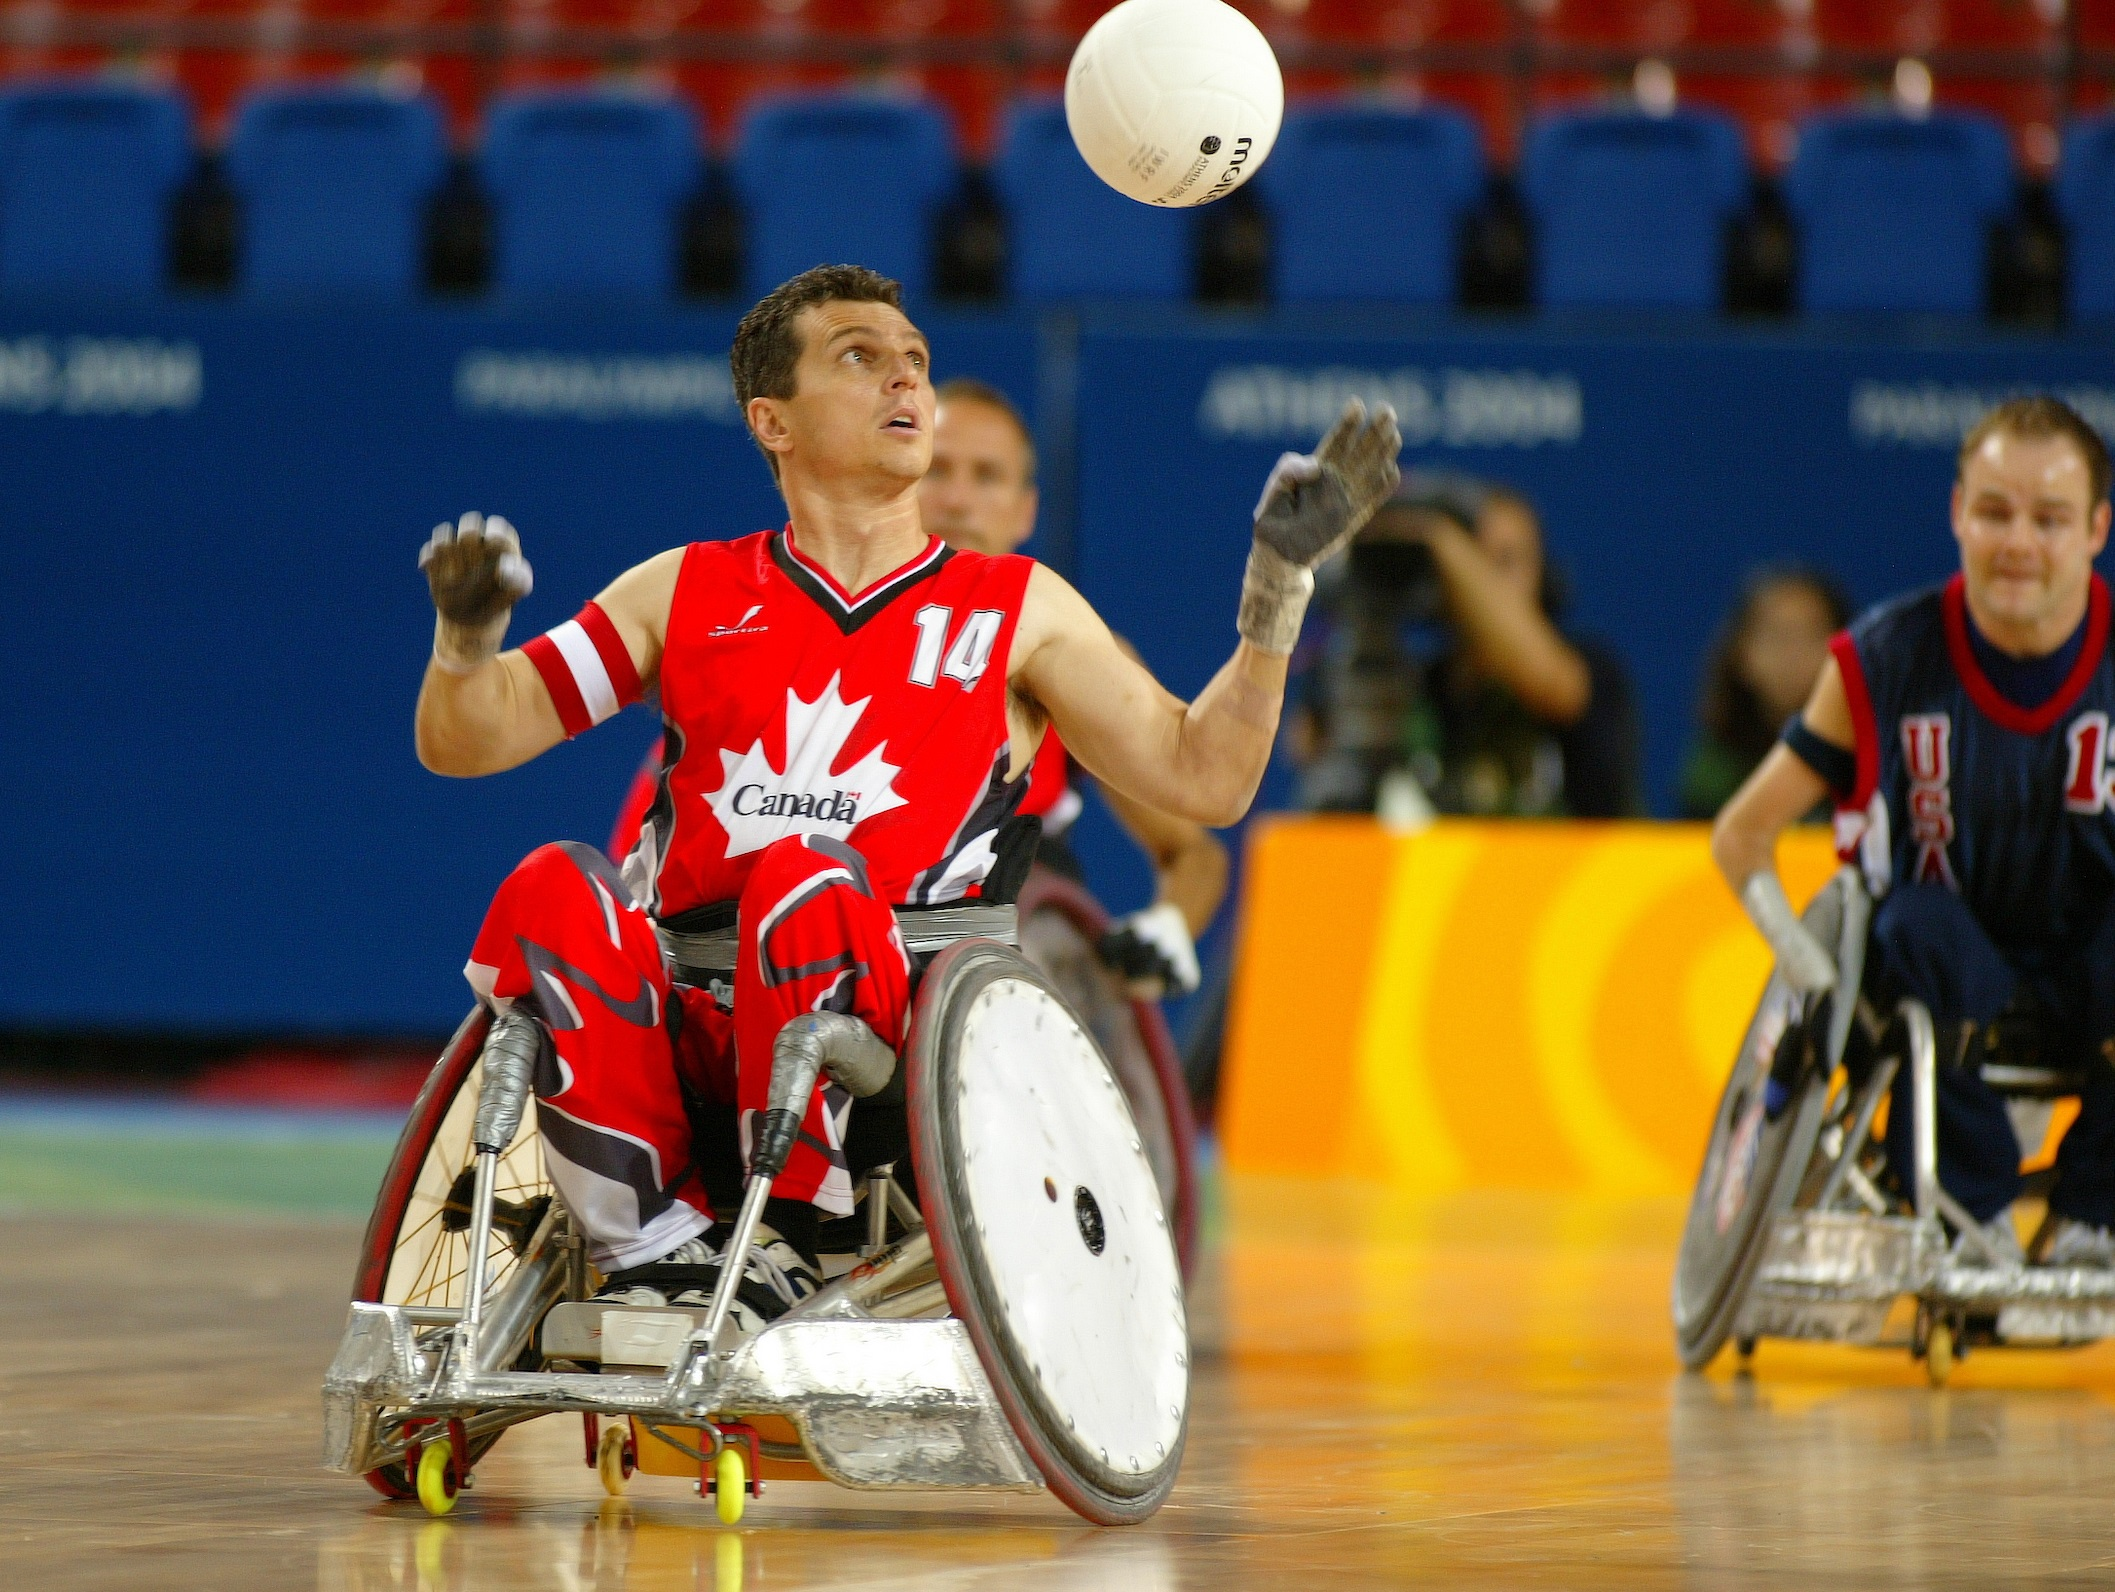 David Willsie in wheelchair rugby action about to catch the ball